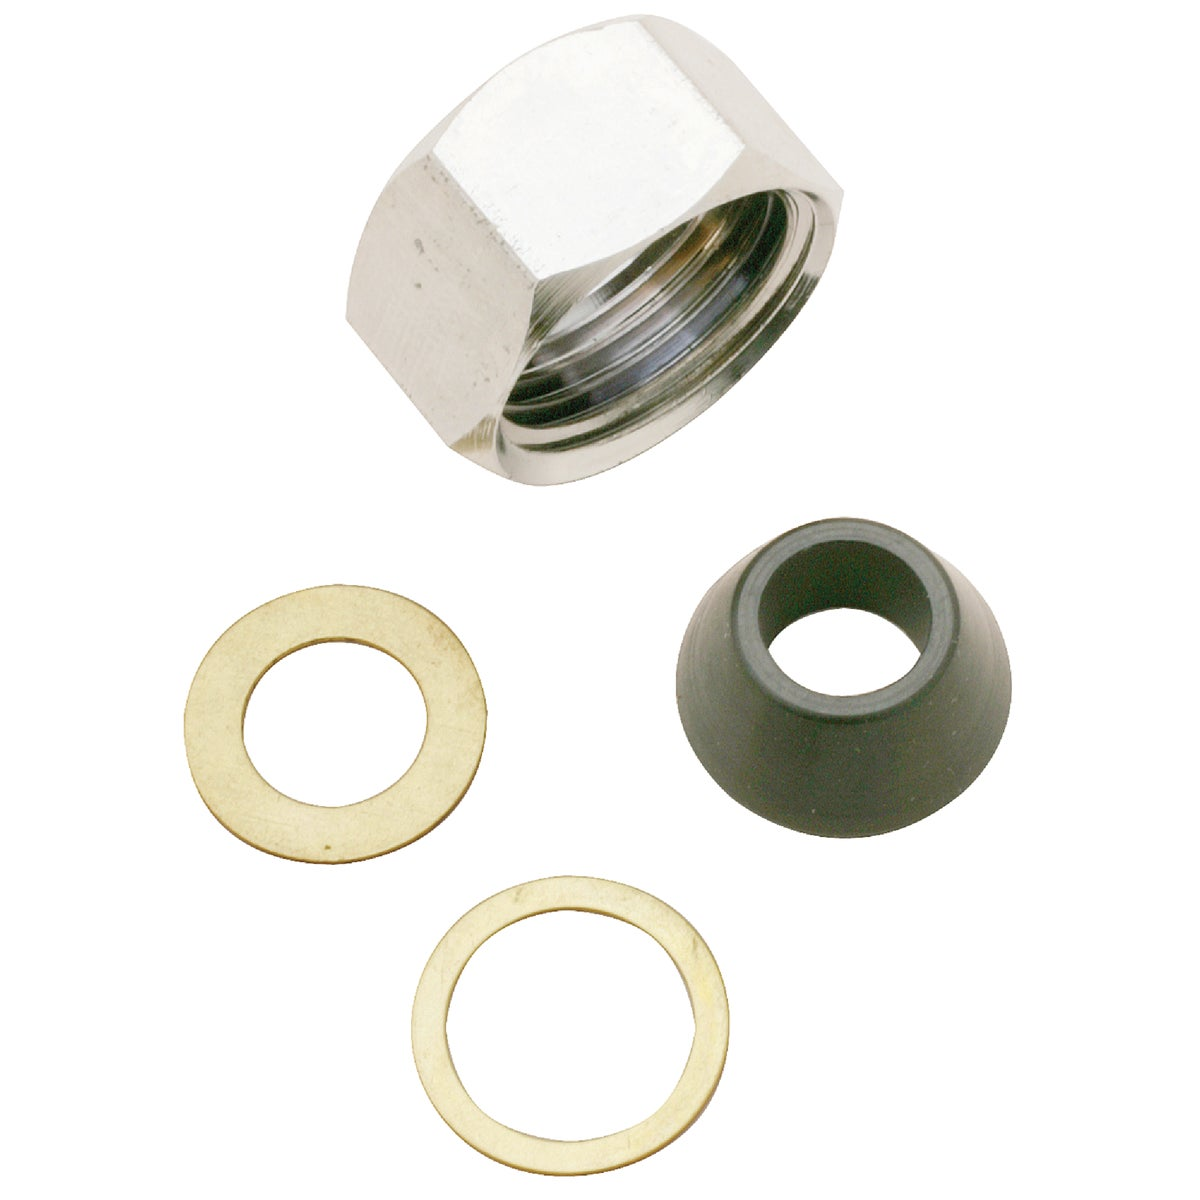 1/2X3/8 SJ NUT SET - 411566 by Plumb Pak/keeney Mfg